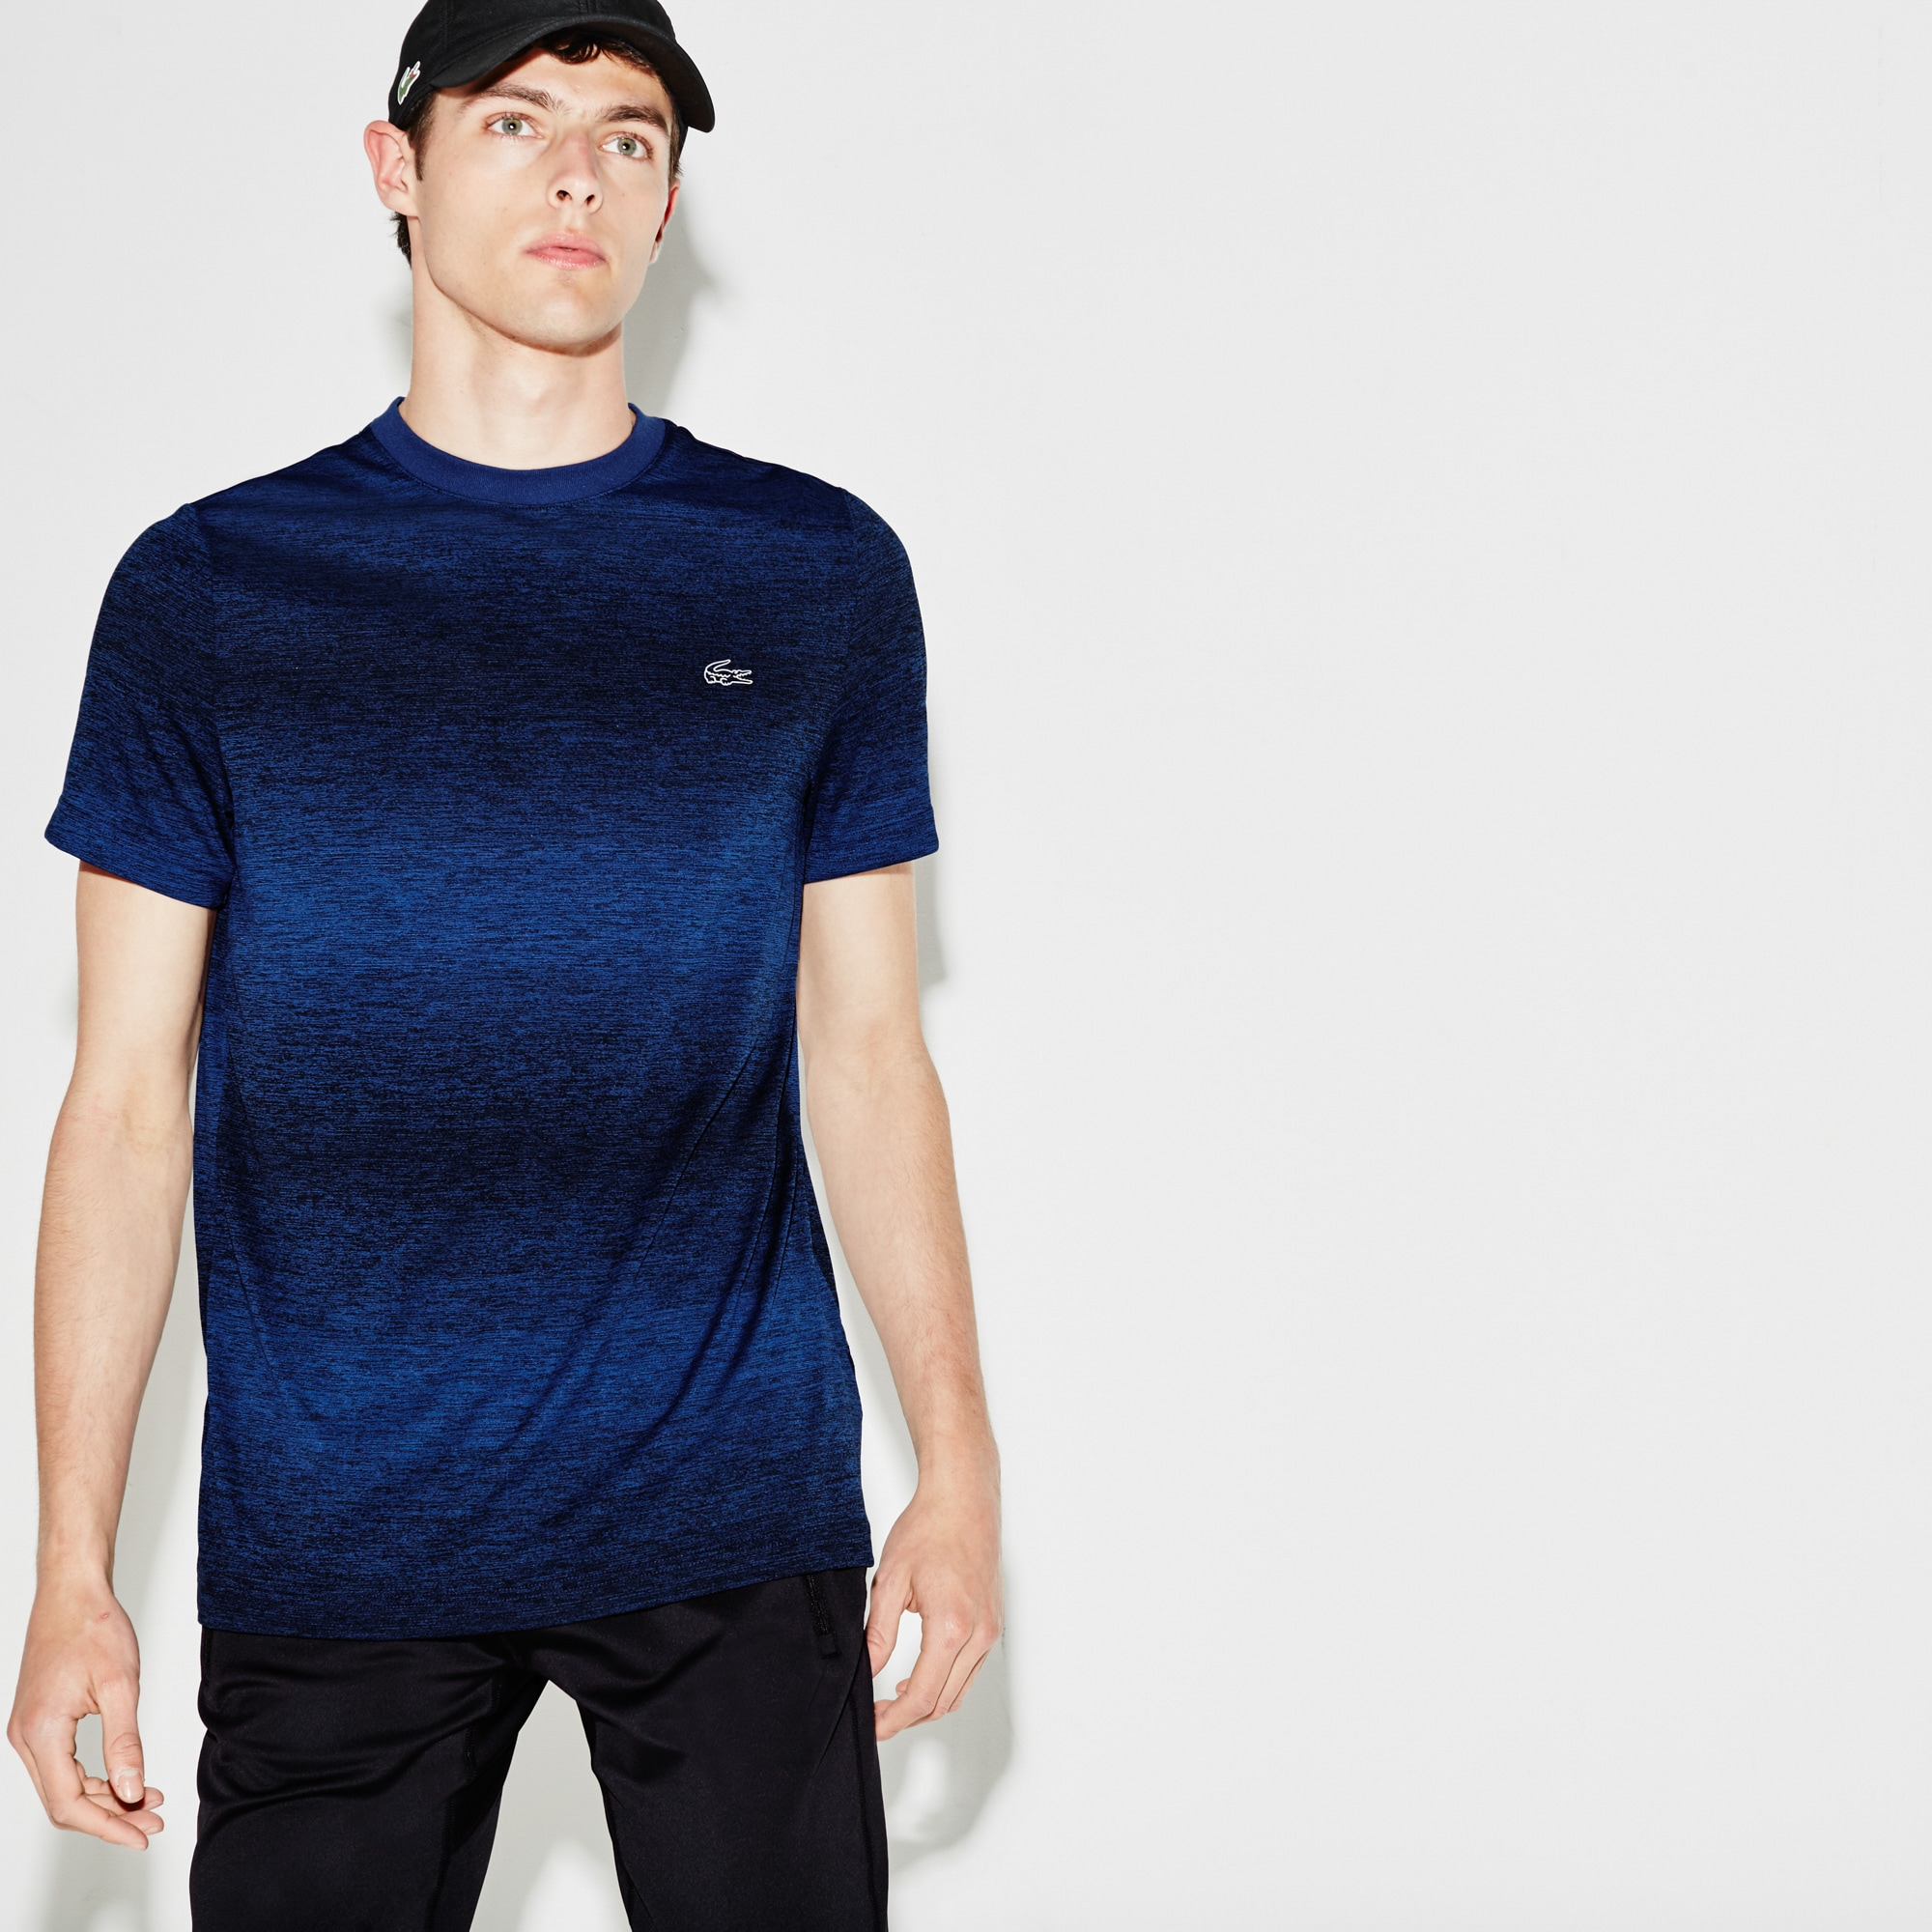 Men's  SPORT Tennis Crew Neck Tech Jersey & Mesh T-shirt